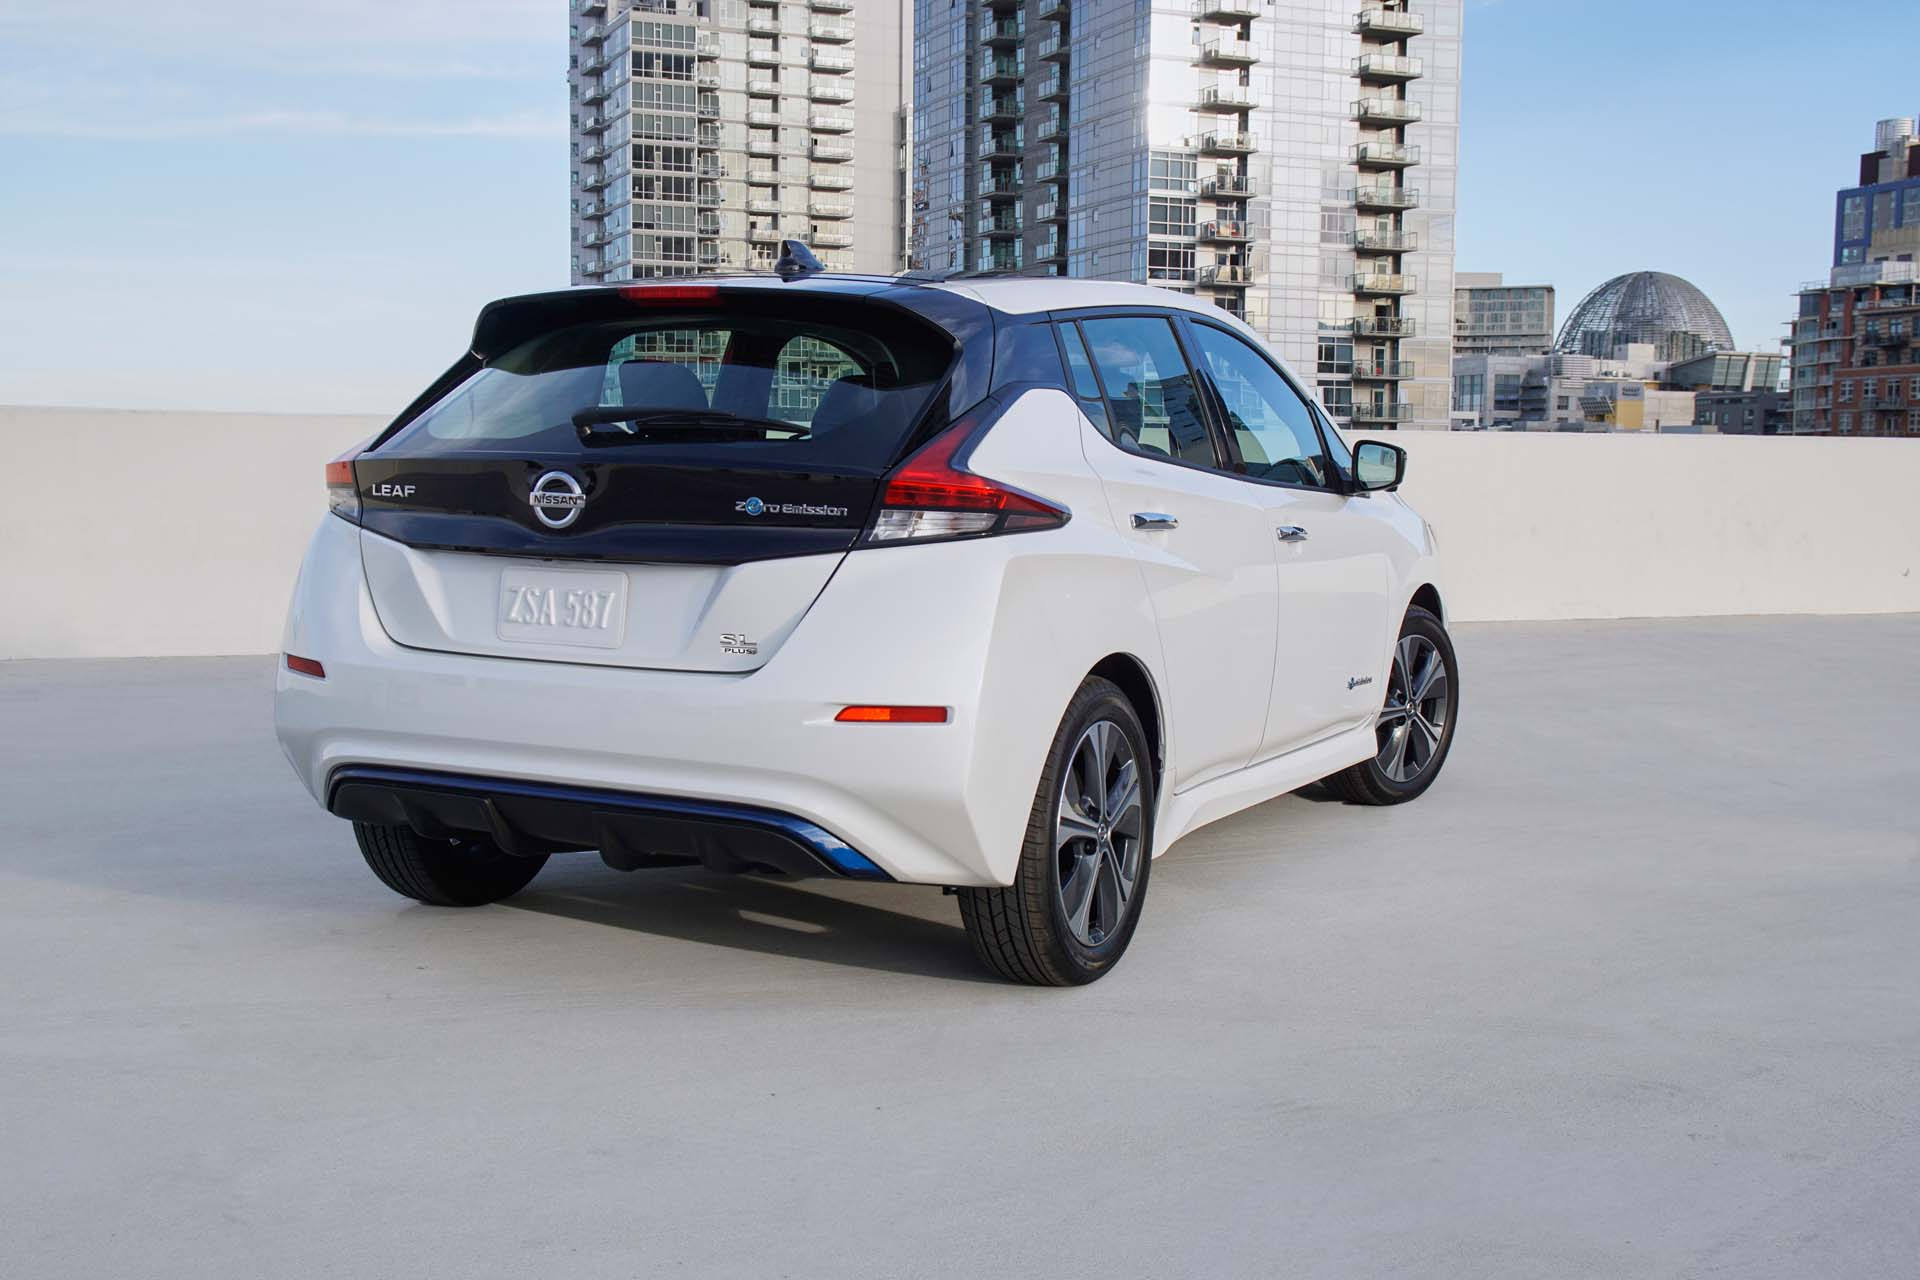 2019 Nissan Leaf Plus vs Leaf: A first look at the differences